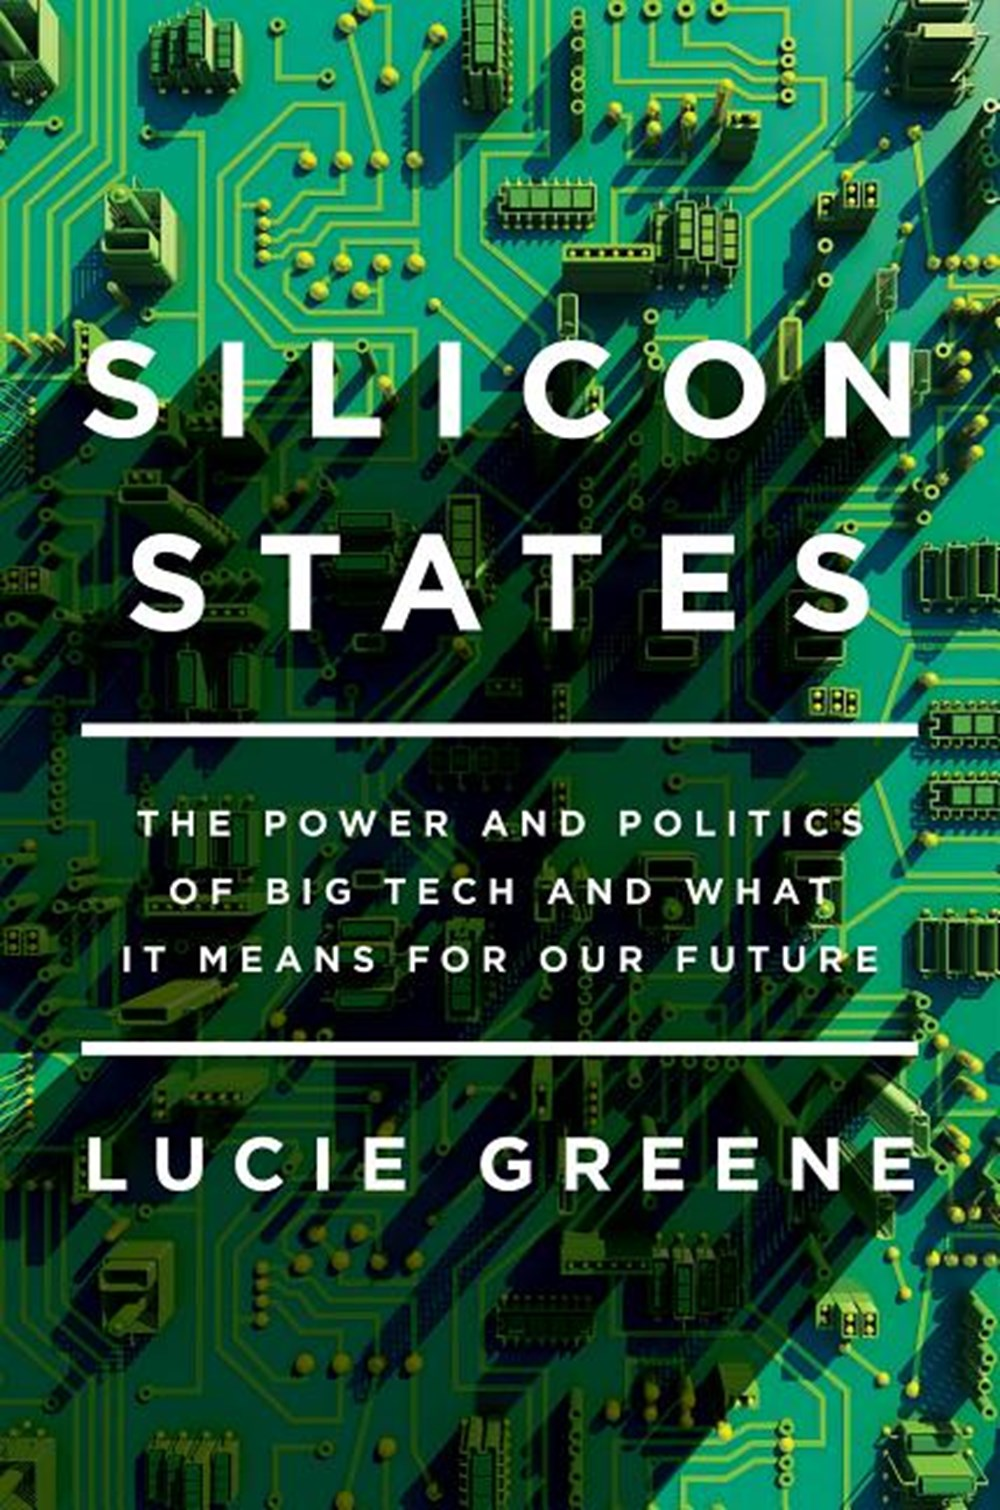 Silicon States The Power and Politics of Big Tech and What It Means for Our Future